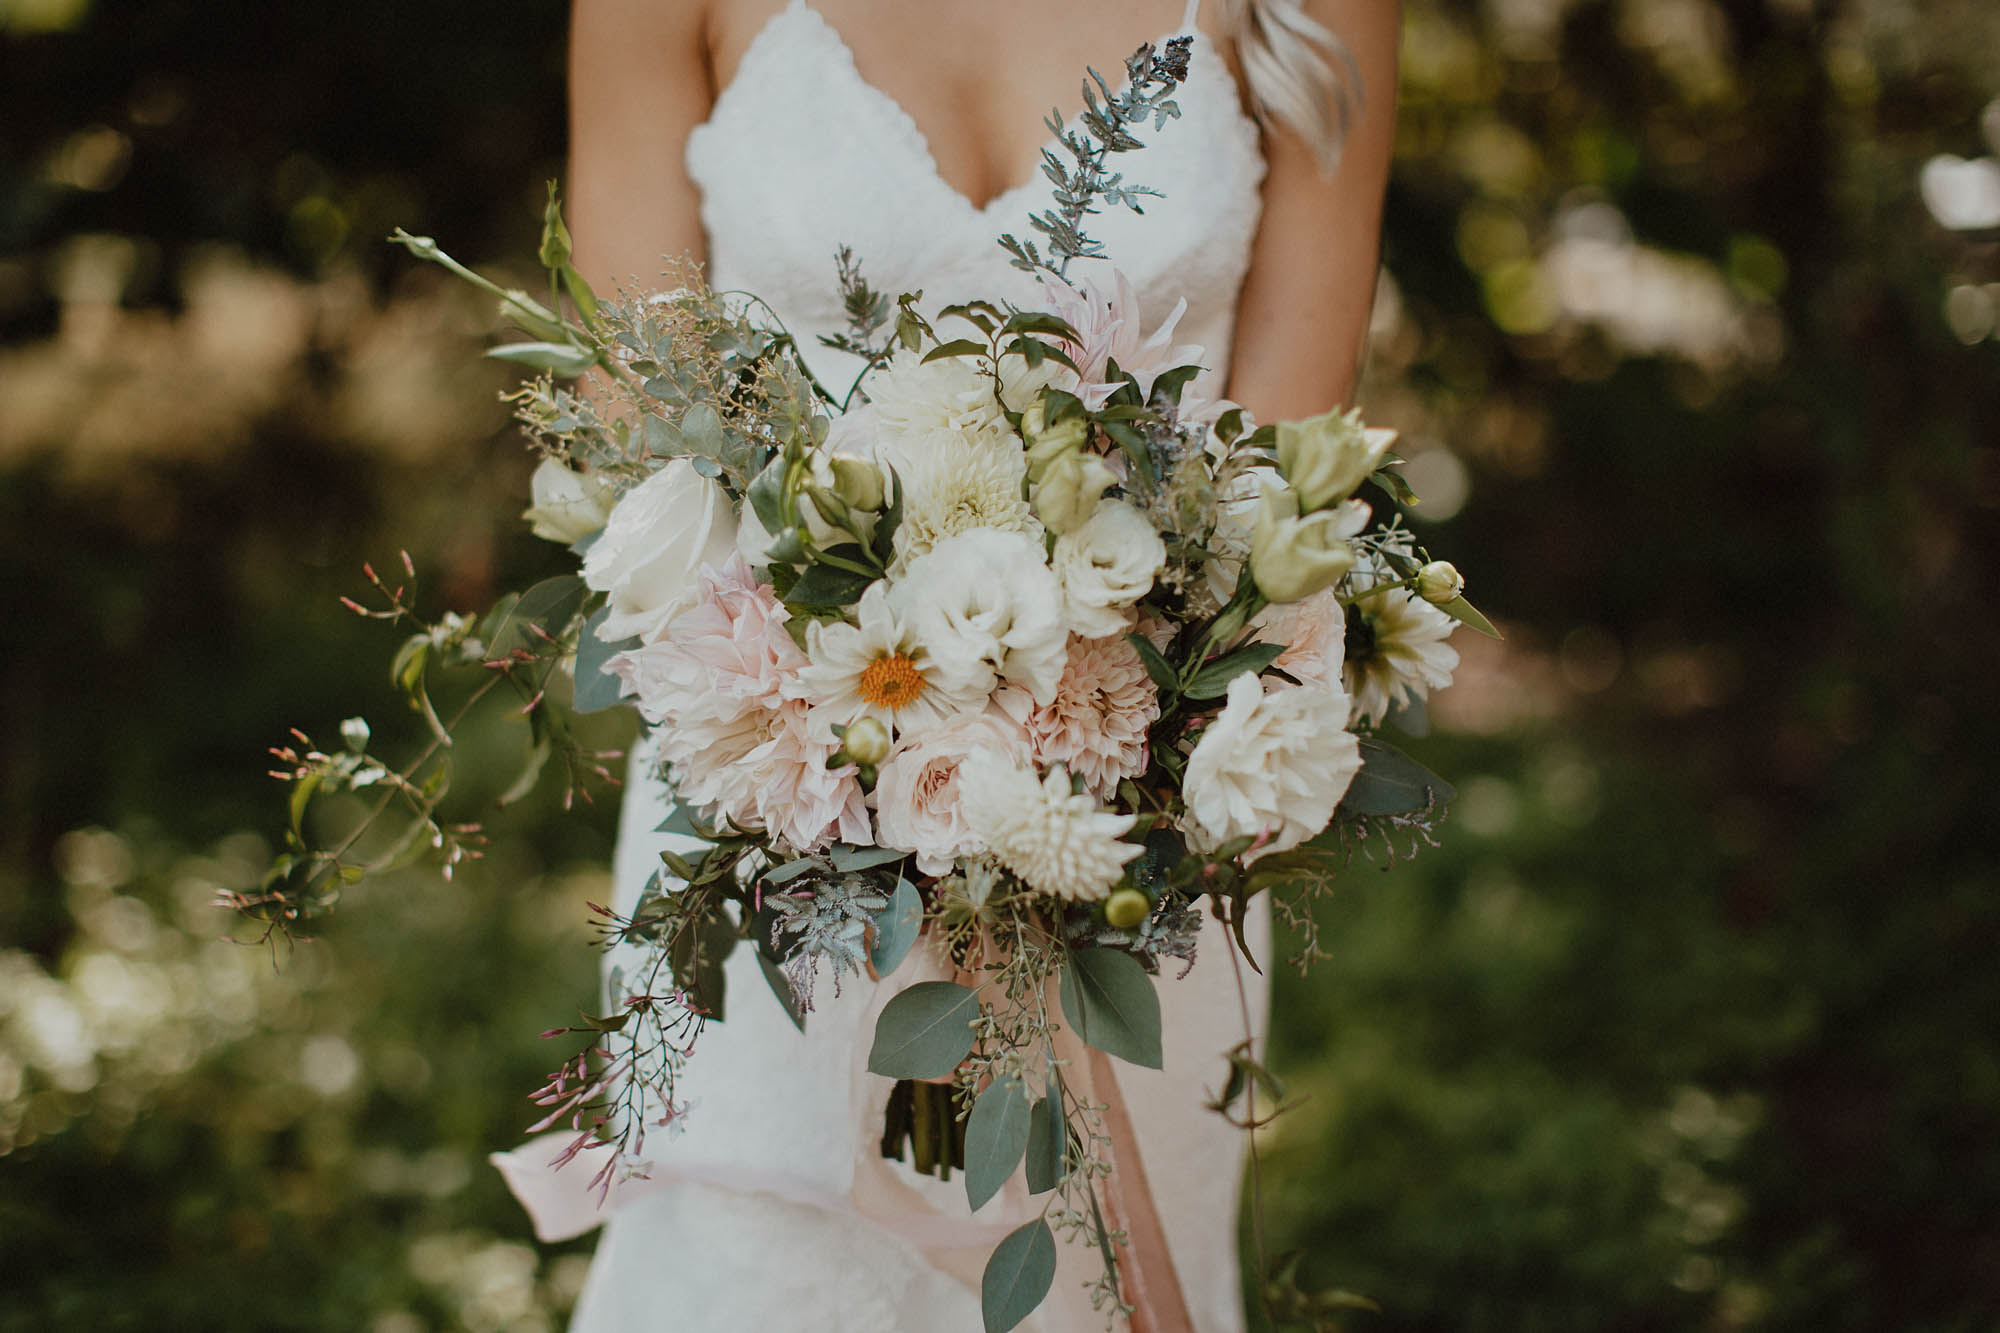 Blush and white floral bouquet with dahlias tuberose garden roses and greenery pink ribbon